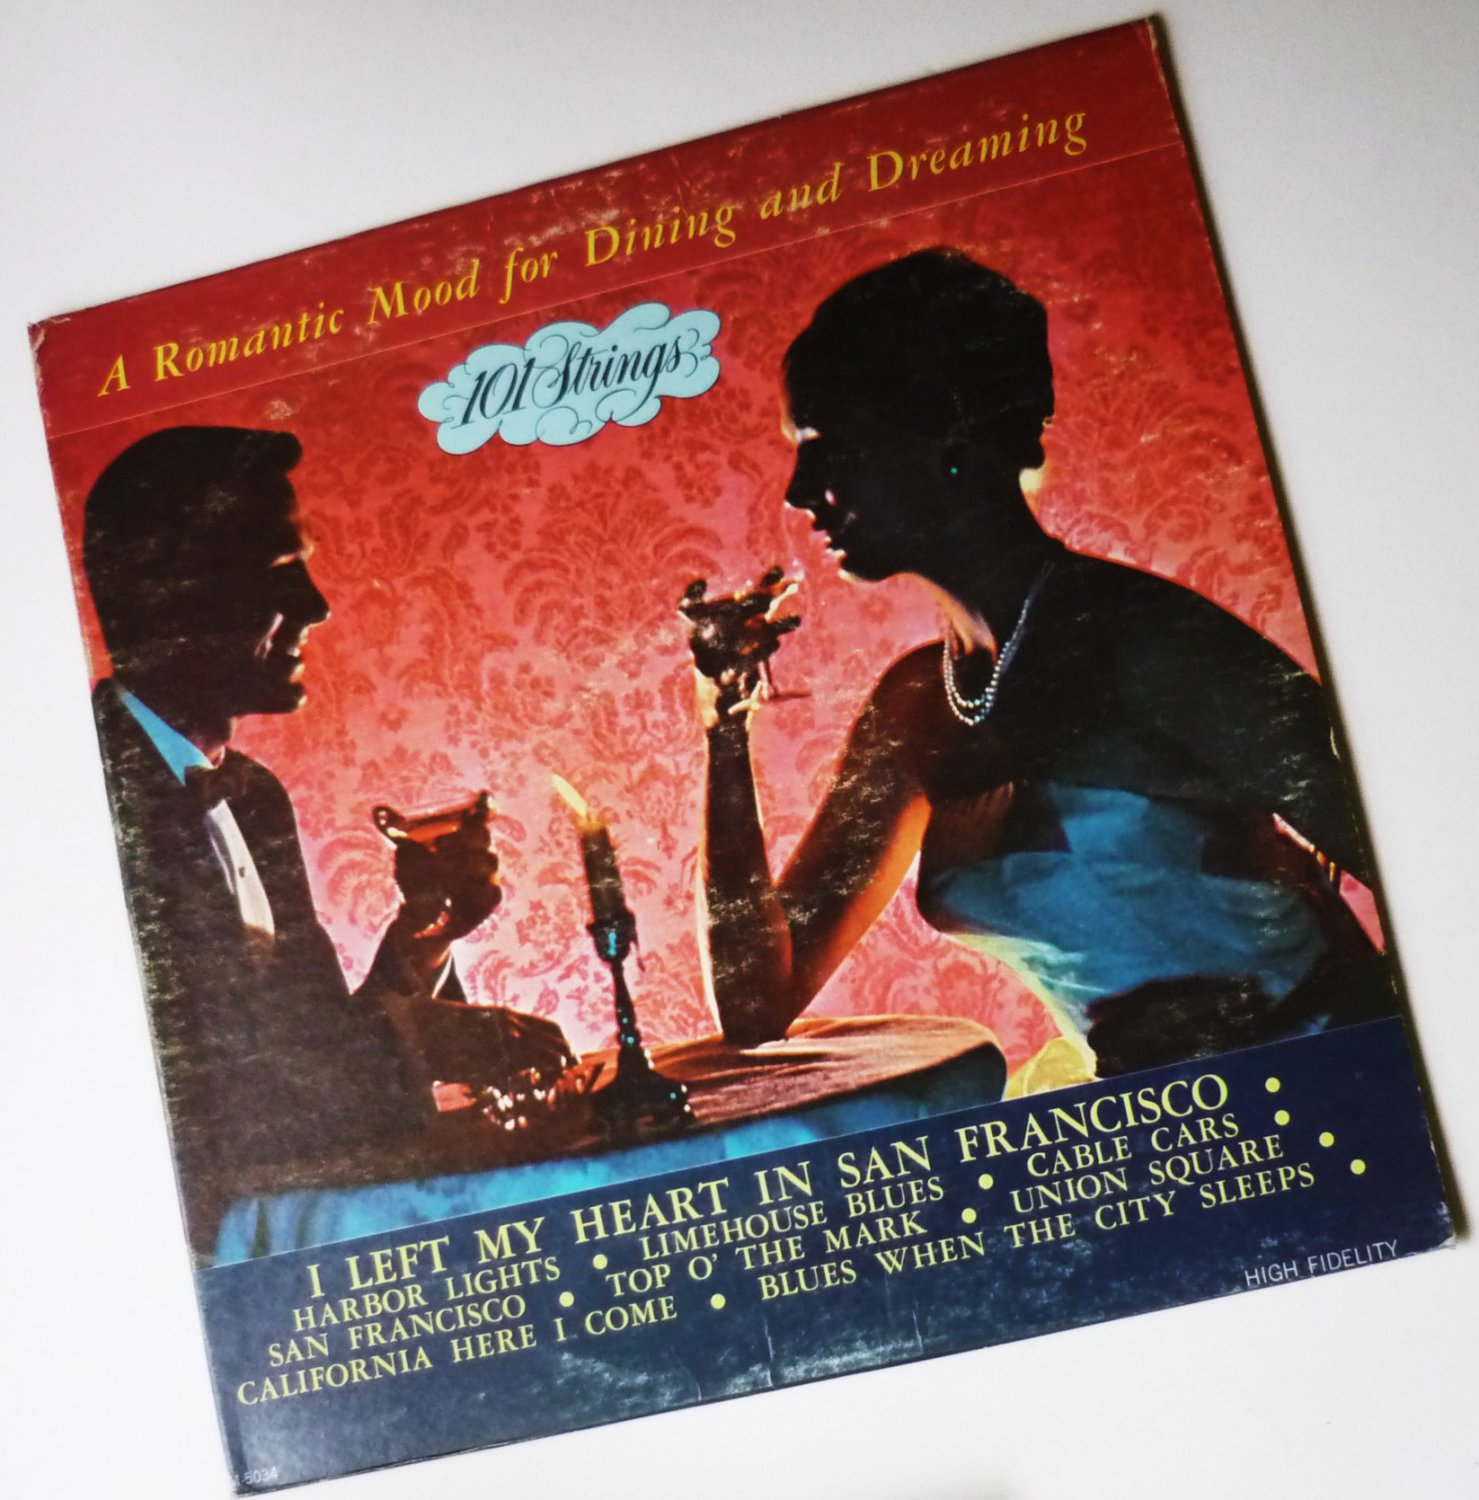 Romantic Mood For Dining And Dreaming - 101 Strings lp m5034